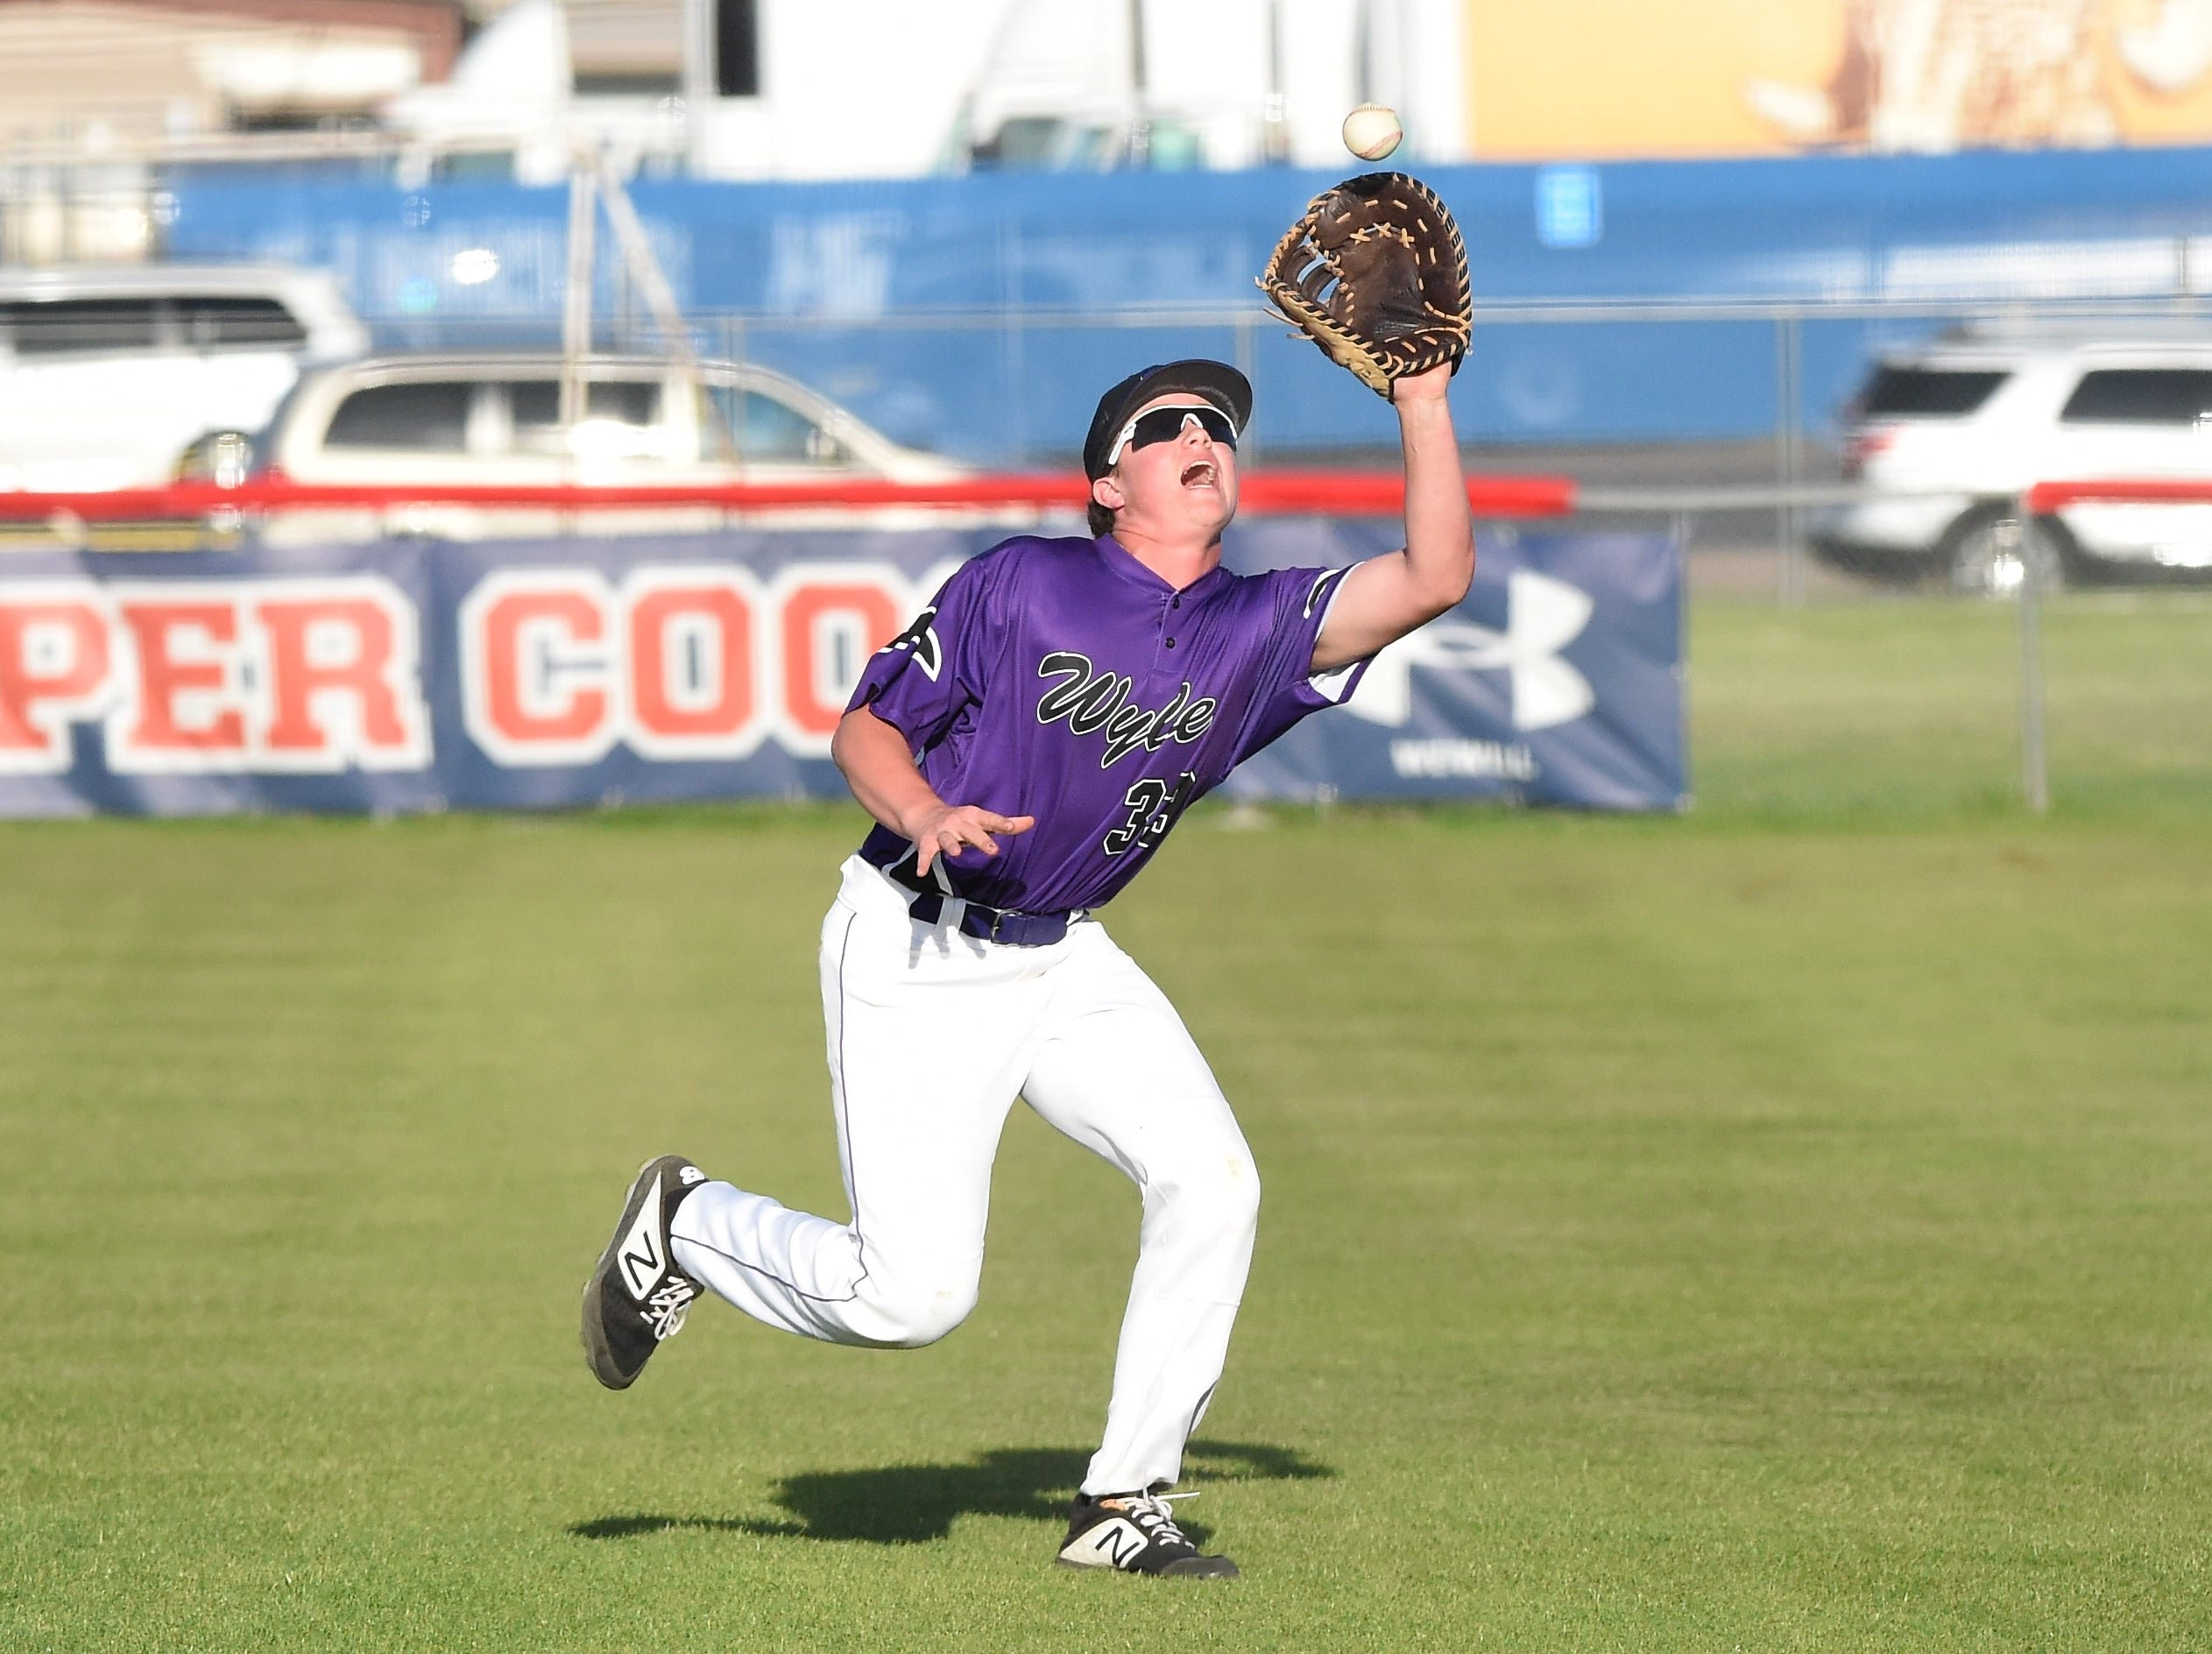 Wylie first baseman Riley Hood (33) looks in a pop up in foul territory against Cooper at Cougar Field on Tuesday, April 9, 2019. The Bulldogs won 11-5.